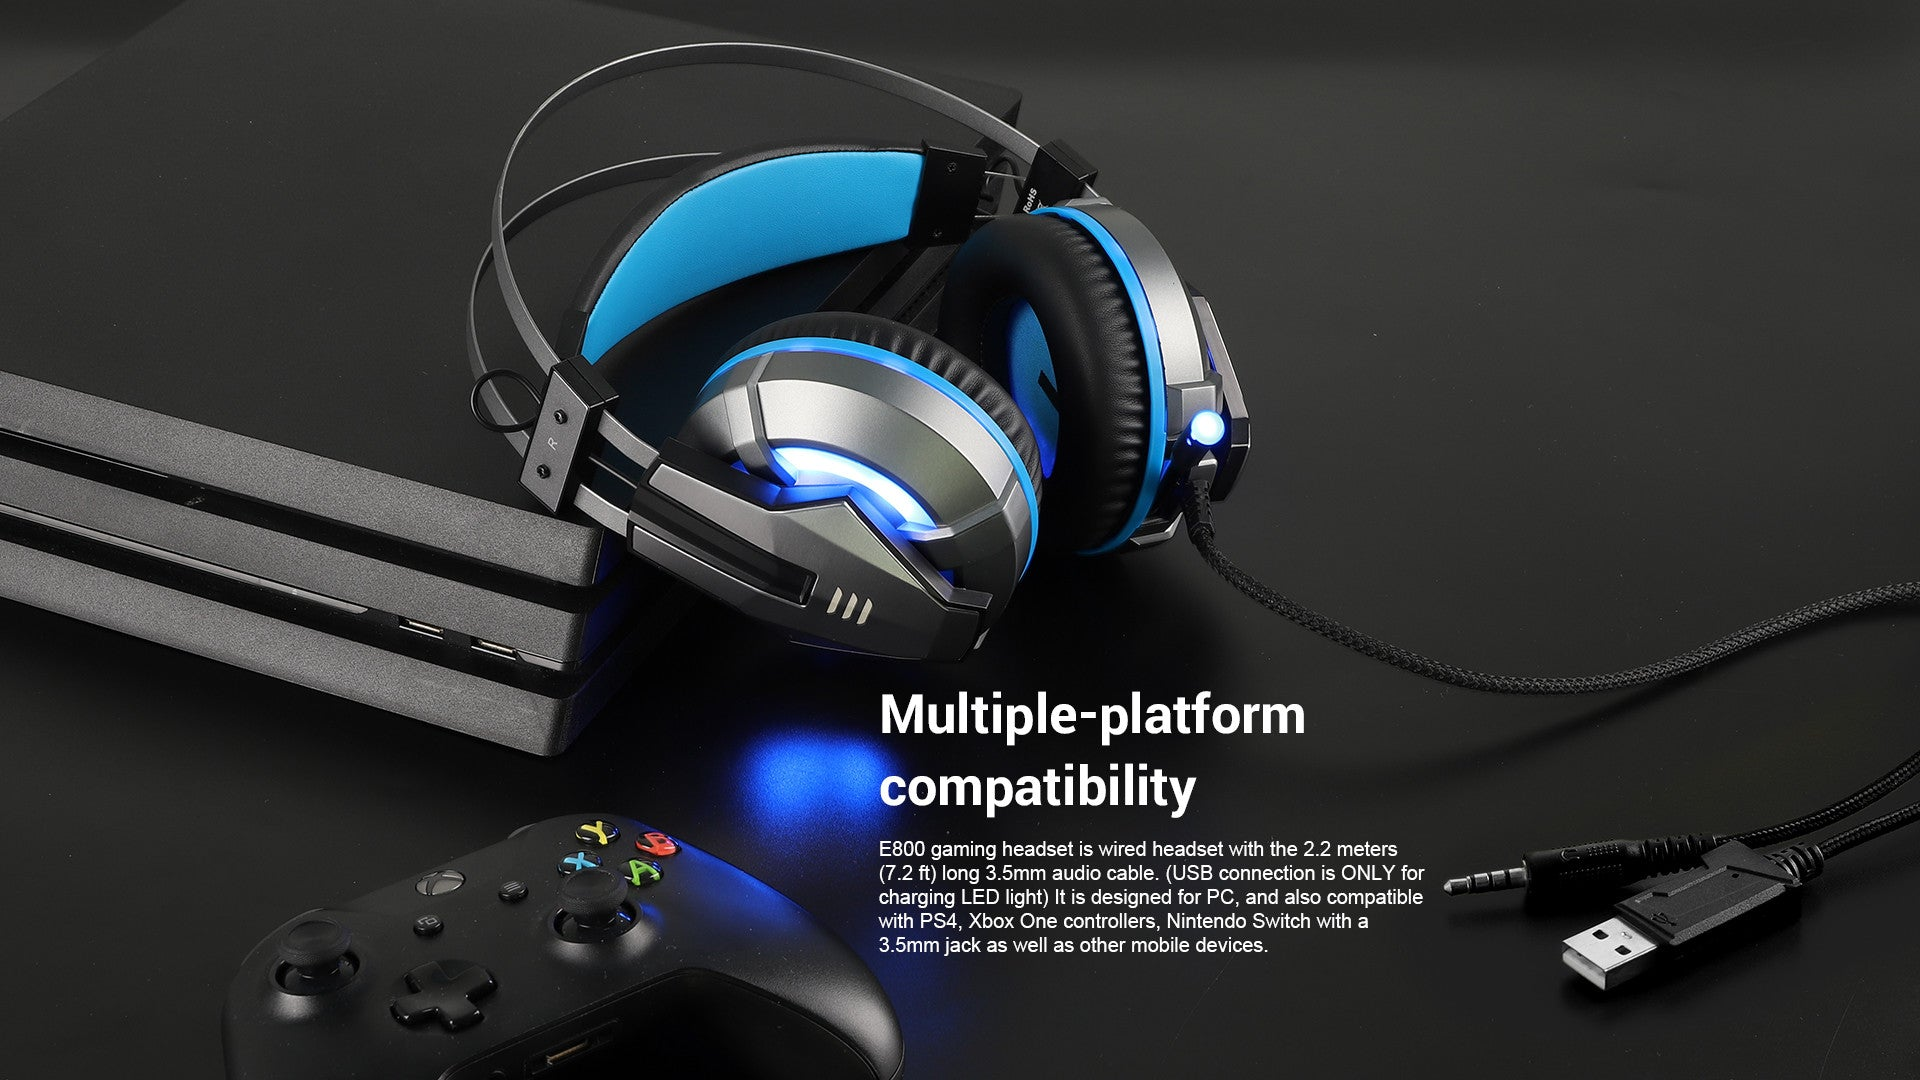 E800 Gaming Headset is wired headset with the 2.2 meters(7.2ft) long 3.5mm audio cable.